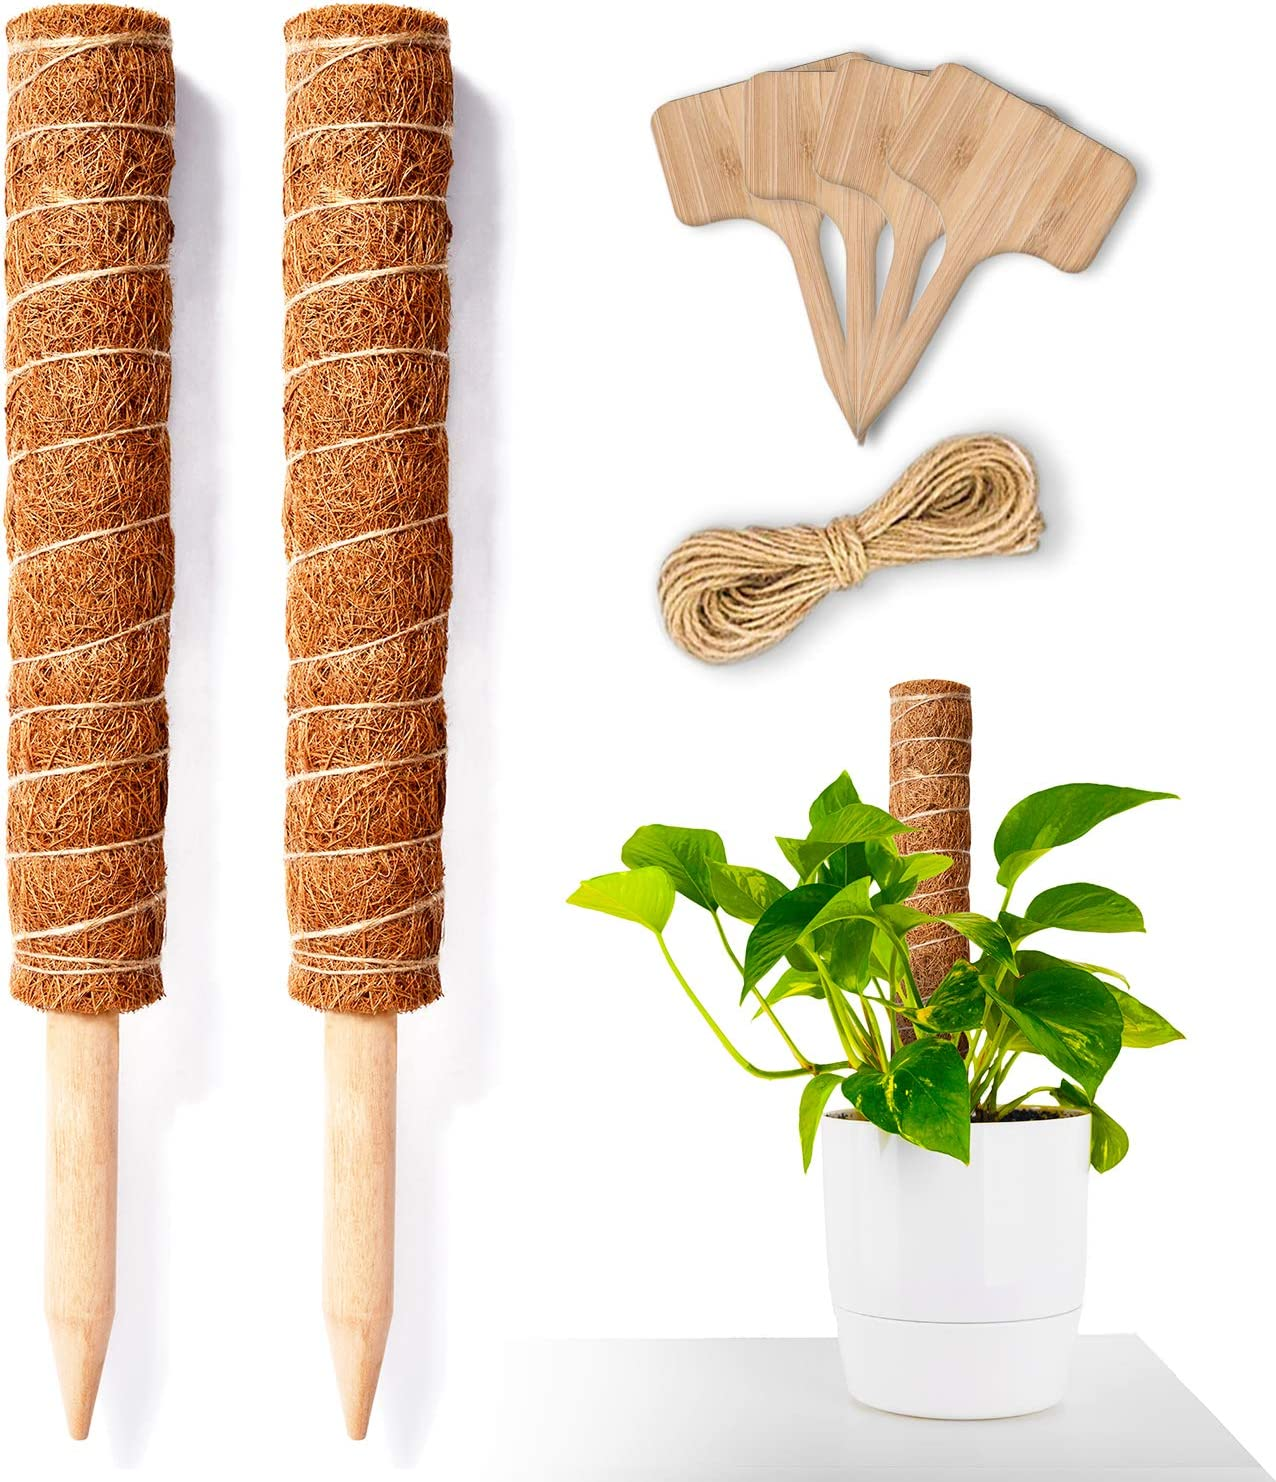 Ourtroness Moss Pole Monstera Tucson Mall Plant Support 16 2PCS Inc - Tulsa Mall Stakes